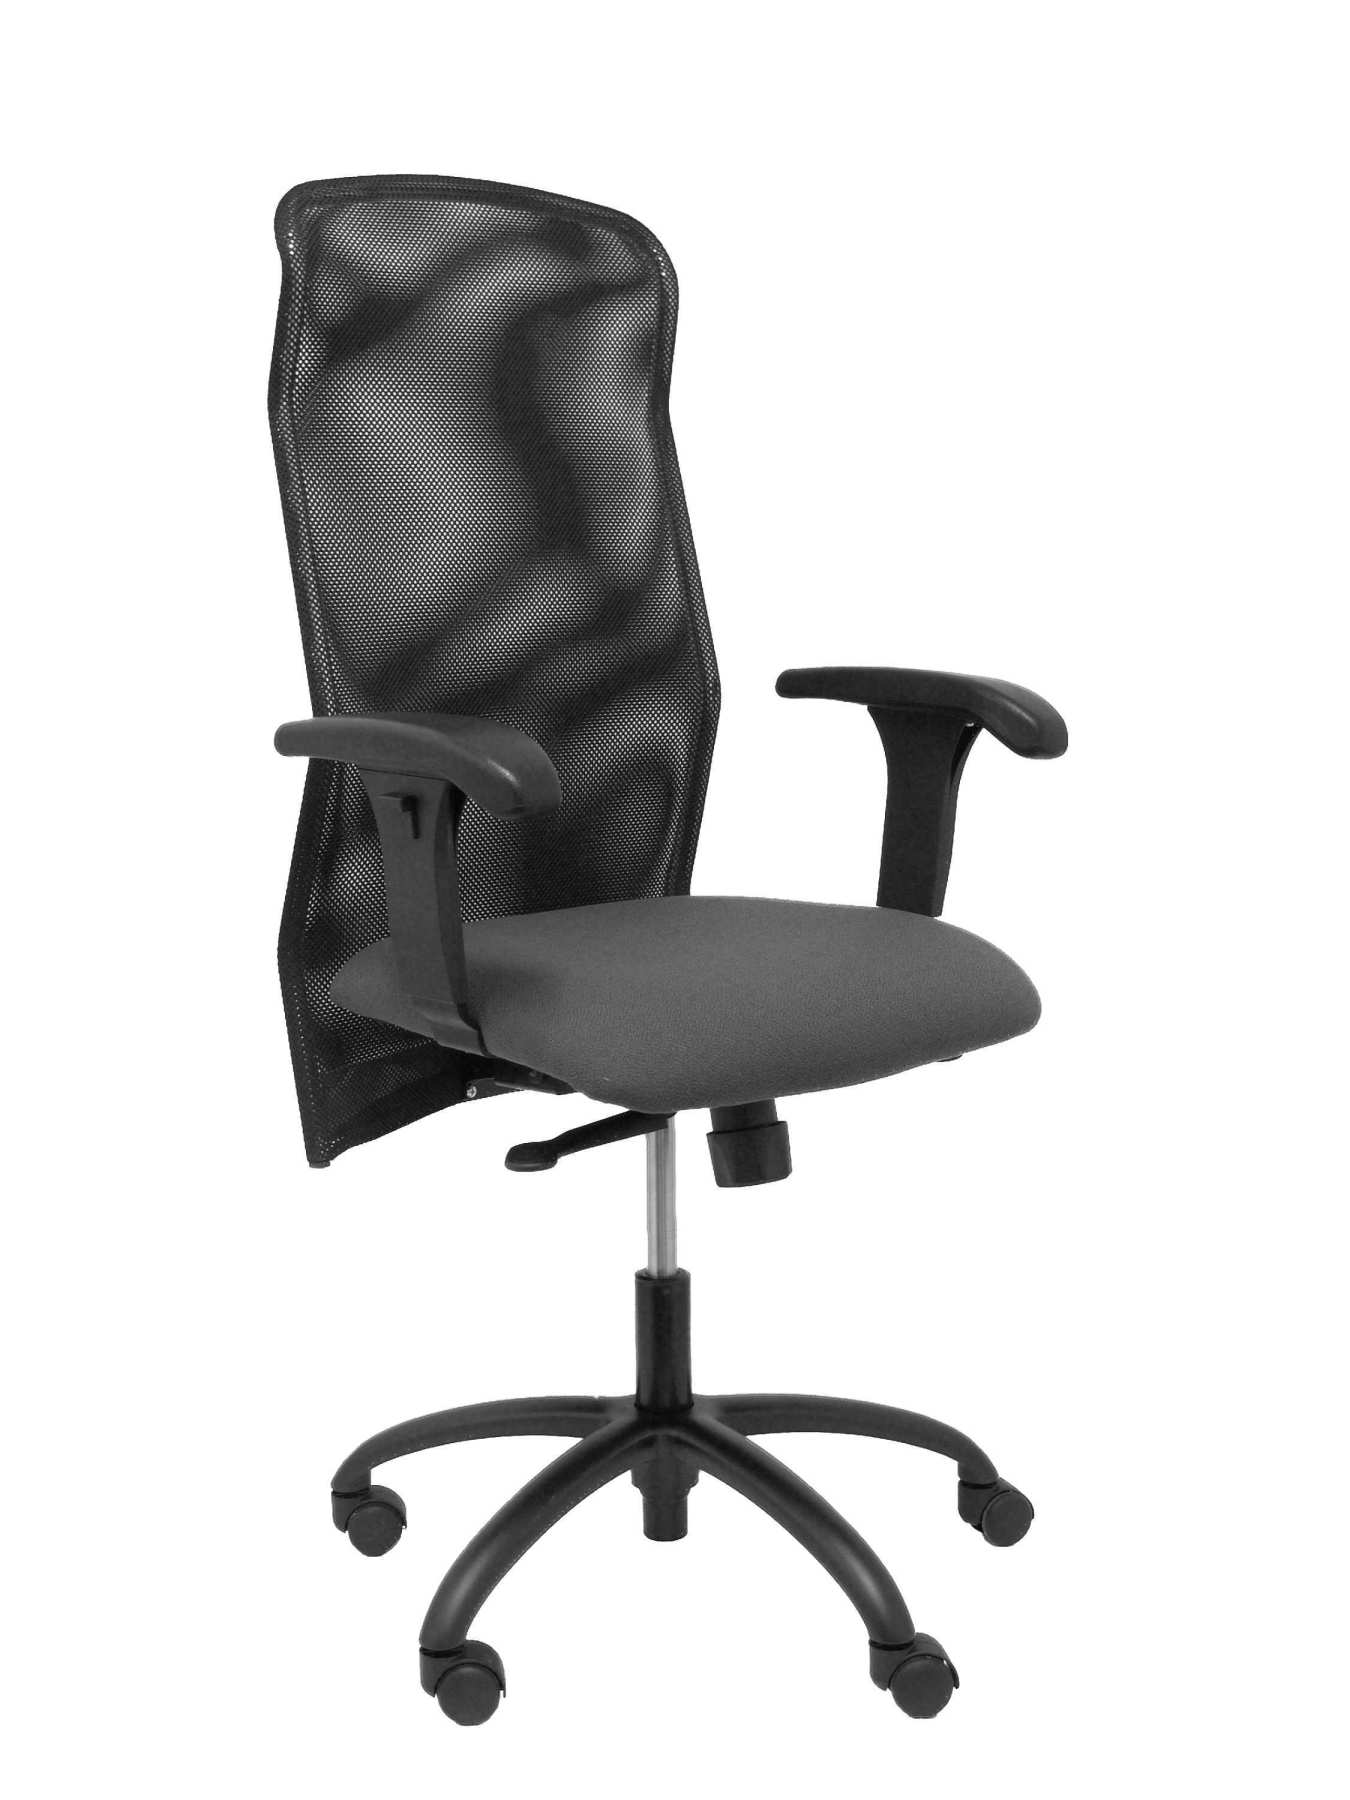 Ergonomic Office Chair With Mechanism Synchro, Arms Adjustable Polyurethane Injected-Backing Mesh Transpi